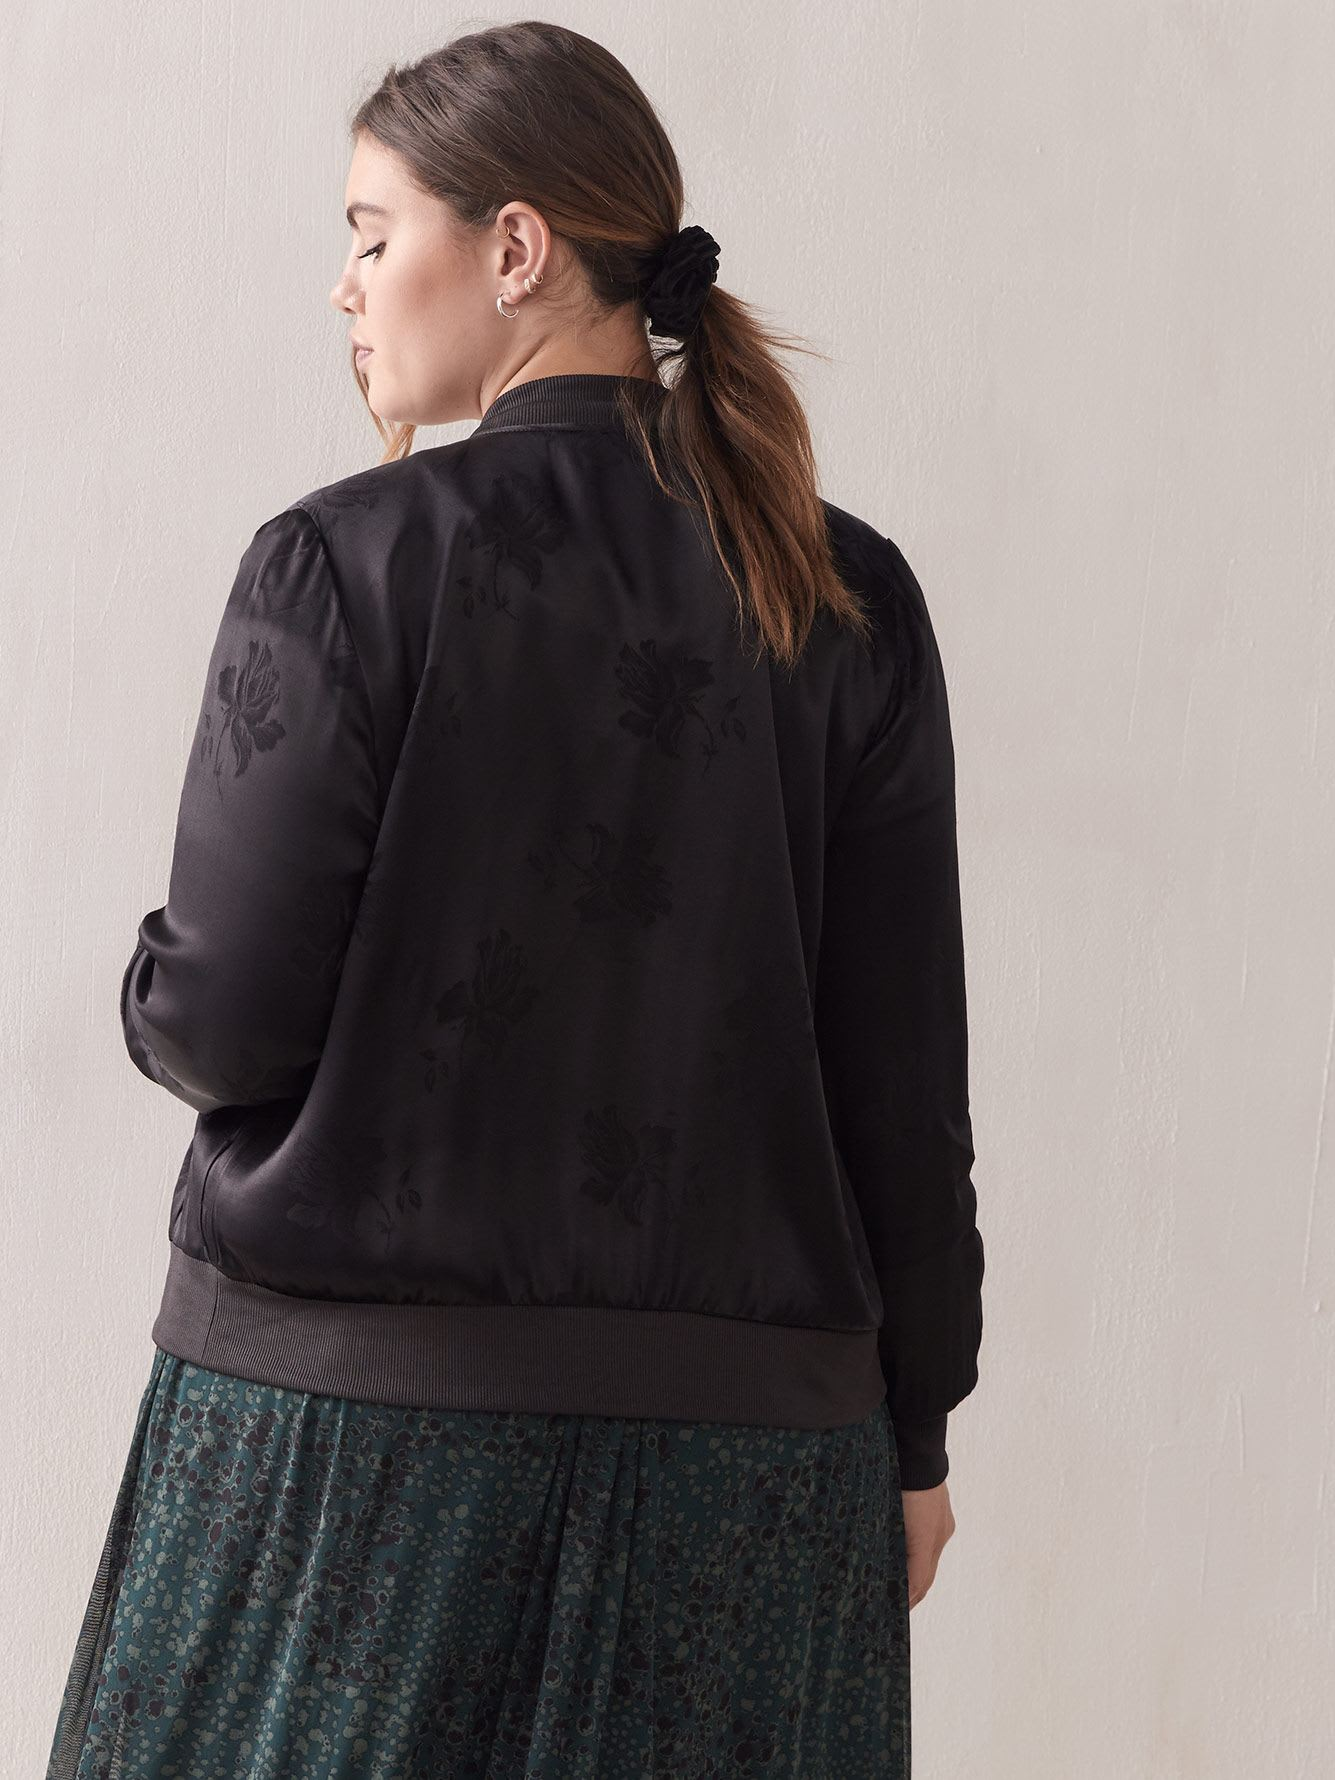 Black Jacquard Bomber Jacket - Addition Elle